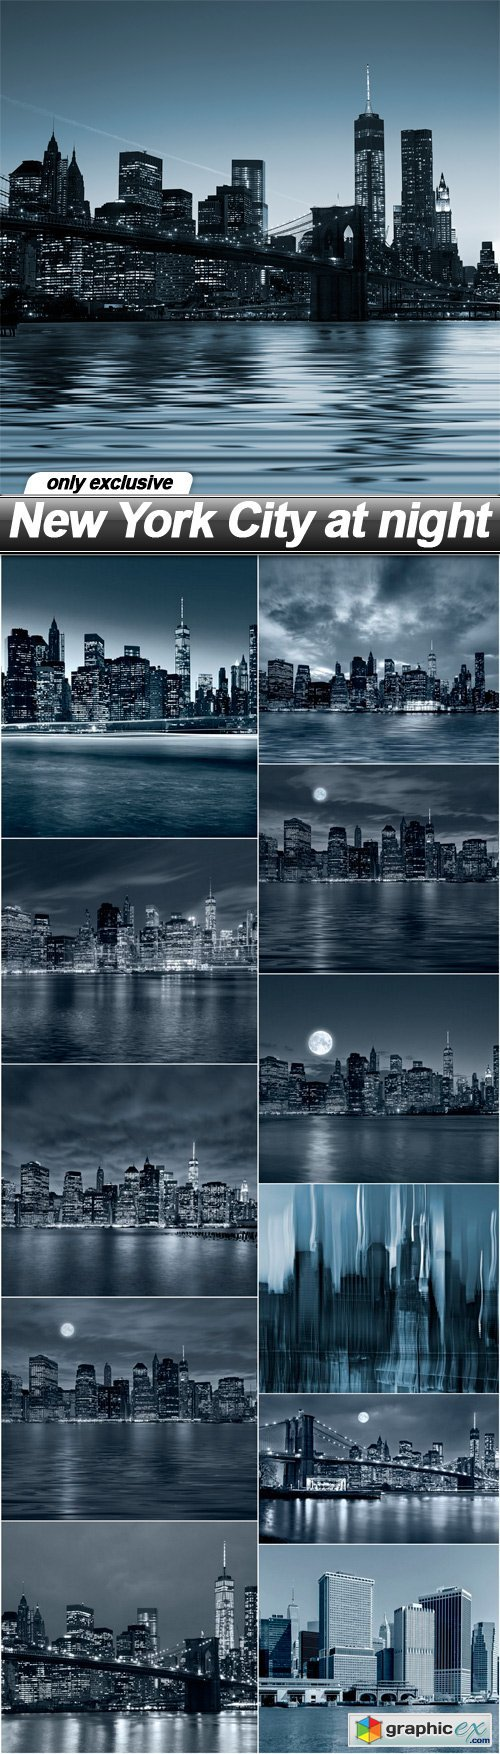 New York City at night - 12 UHQ JPEG